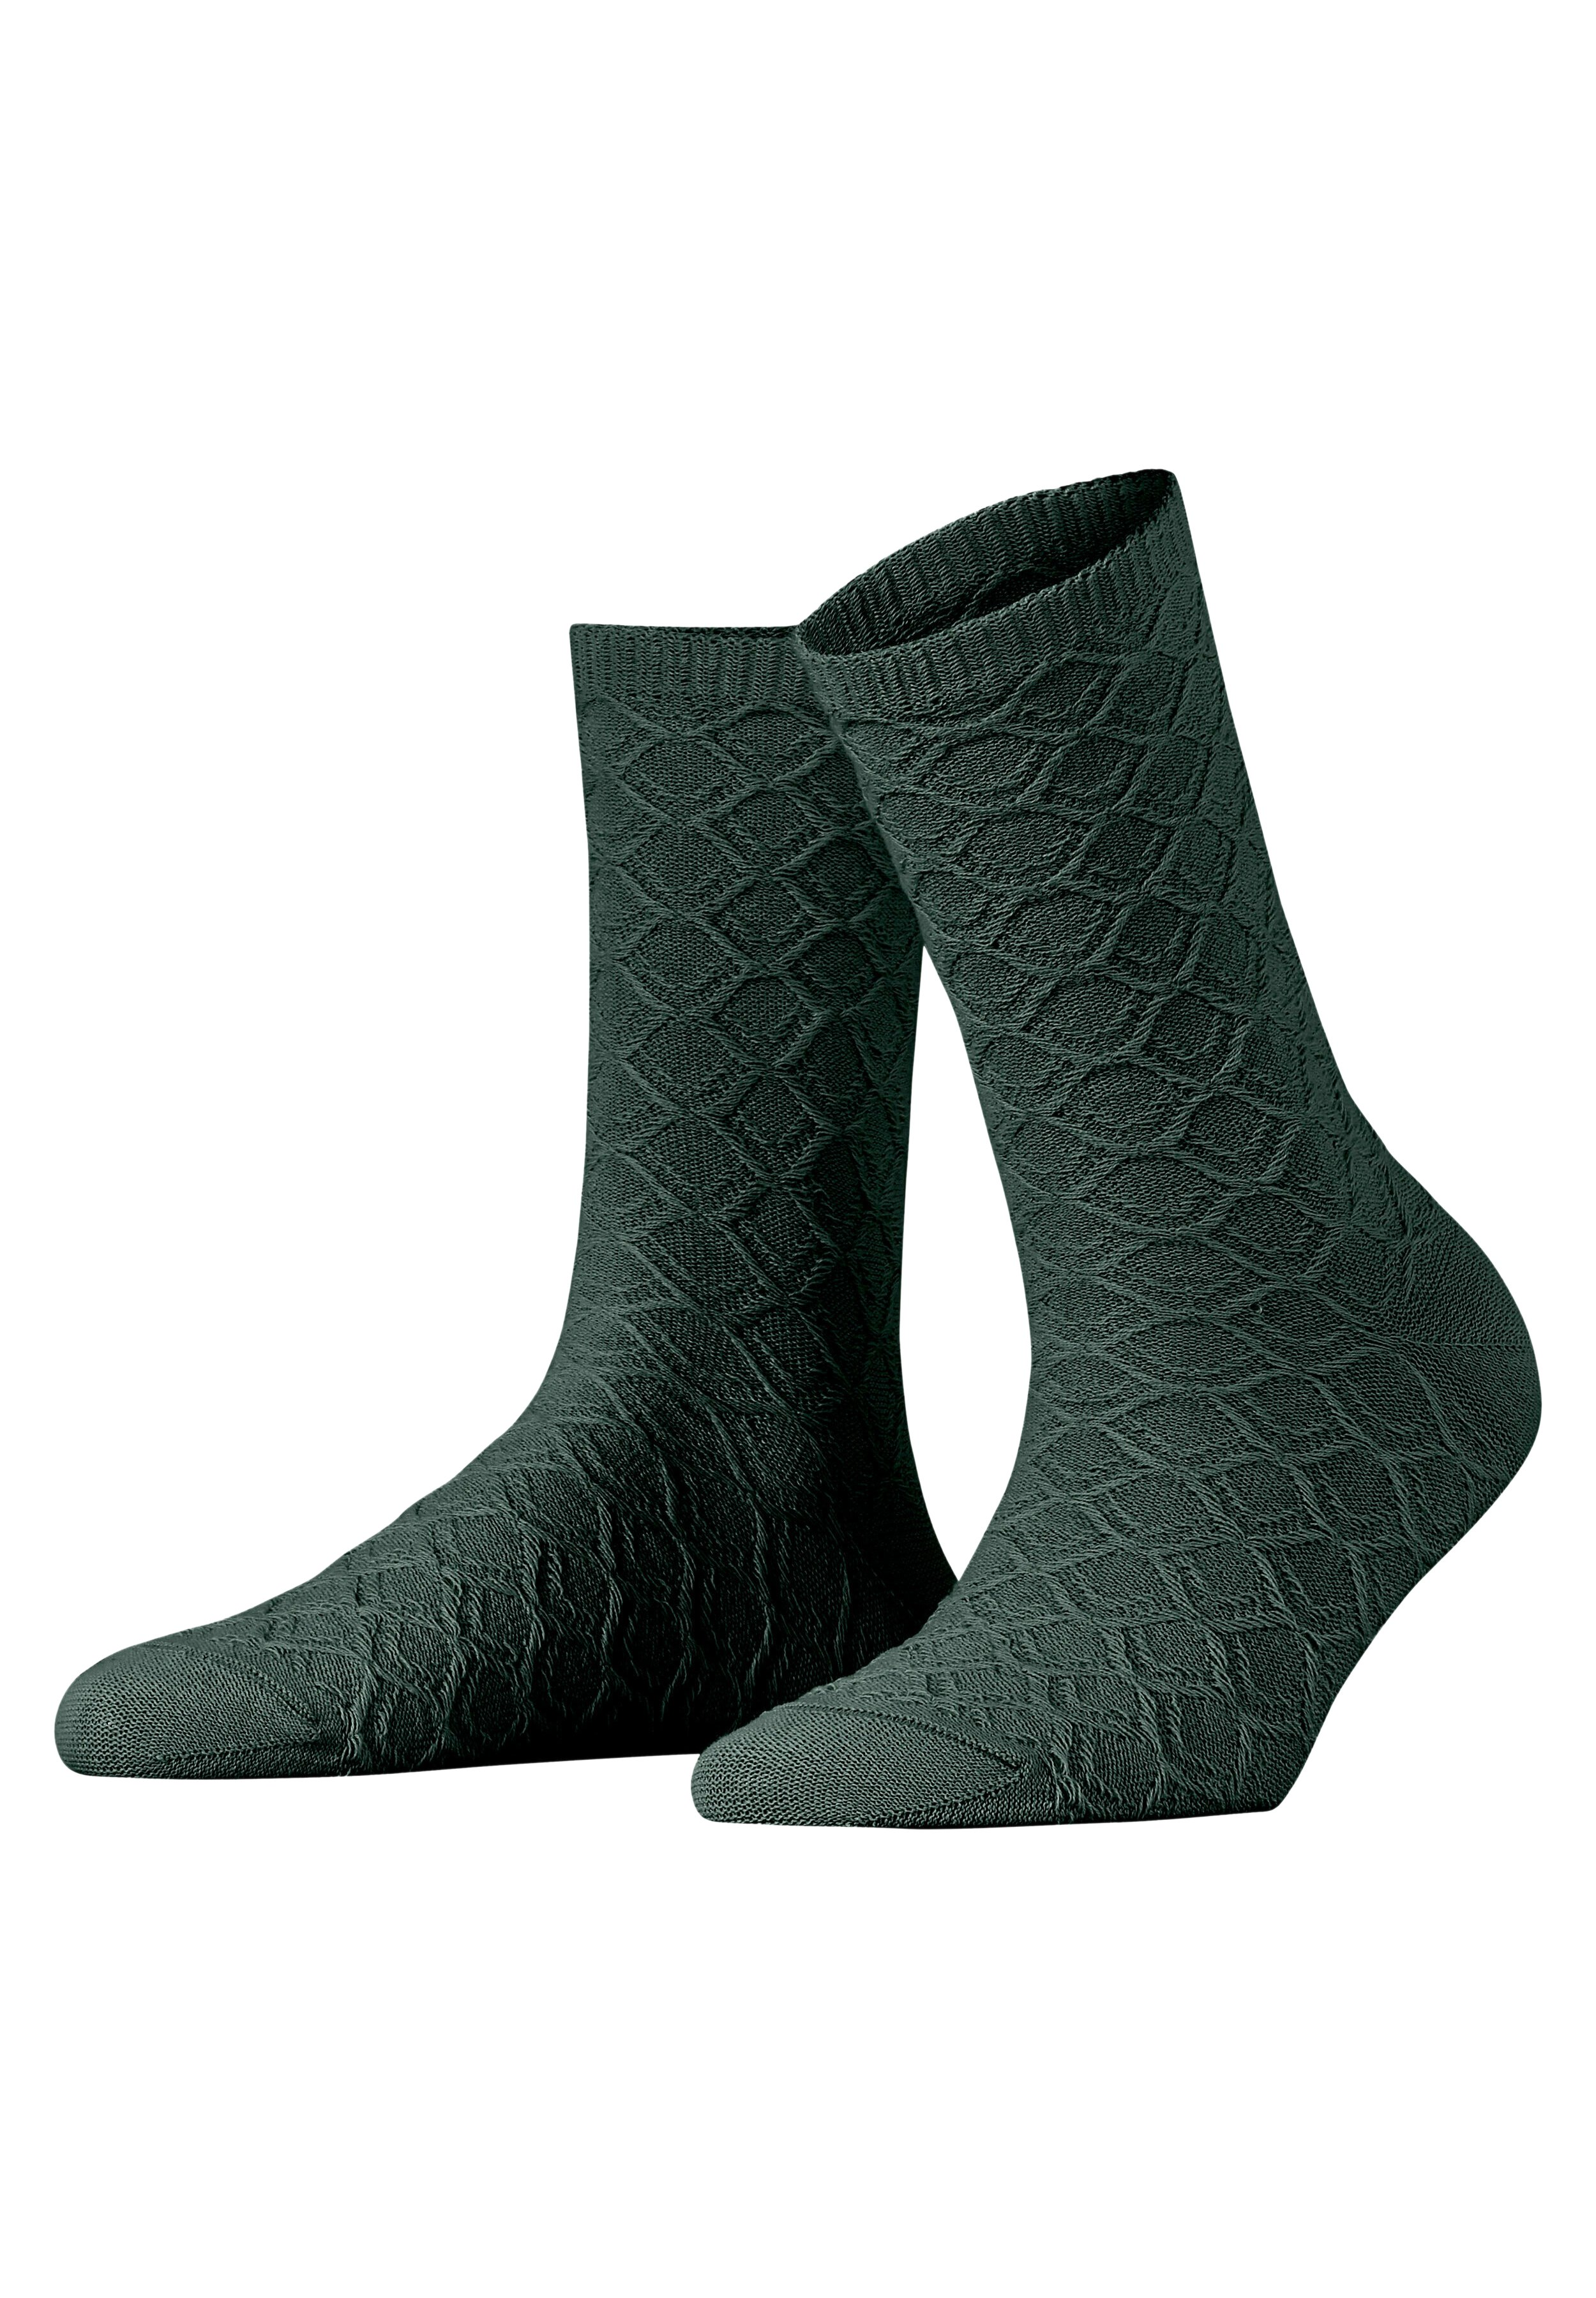 Femme Chaussettes - thyme